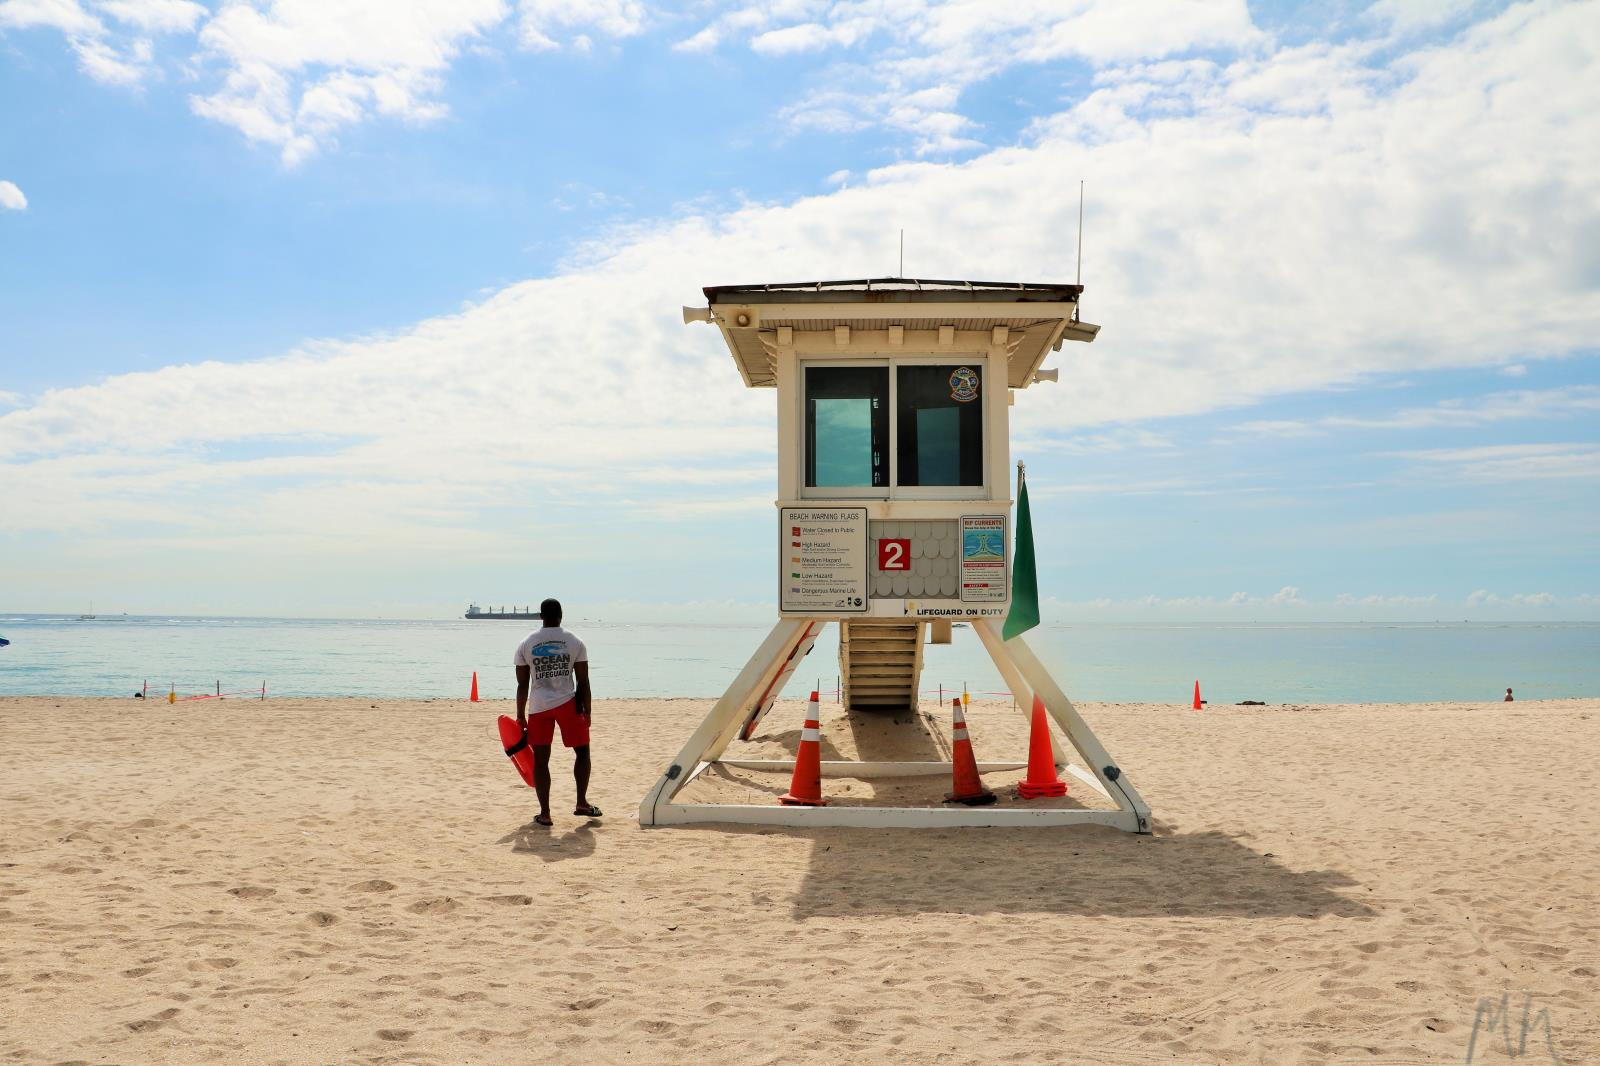 City of Fort Lauderdale, FL : About Ocean Rescue